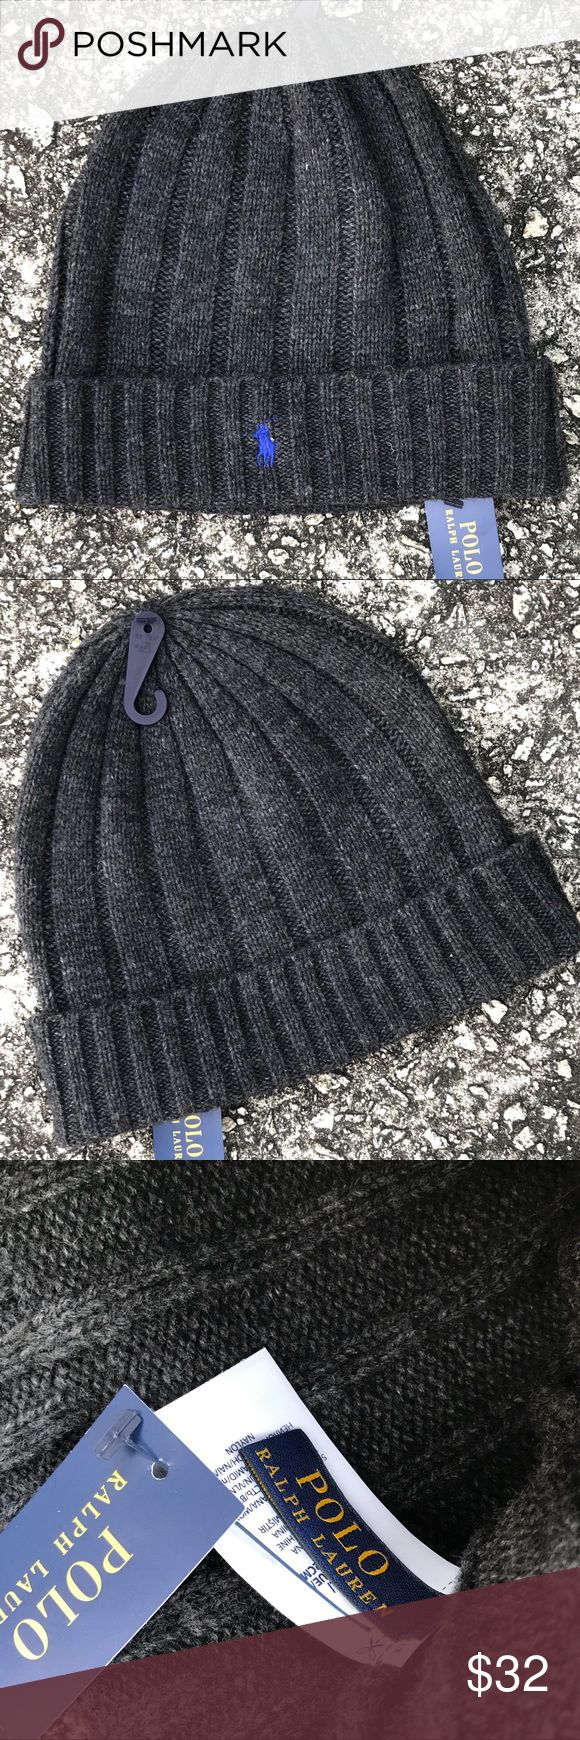 NWT - RL POLO Beanie Authentic Ralph Lauren POLO Beanie  • Unisex • Dark Gray with Royal Blue POLO emblem • 50% Wool, 50% Nylon • BNWT 💲Price is Firm💲 Polo by Ralph Lauren Accessories Hats